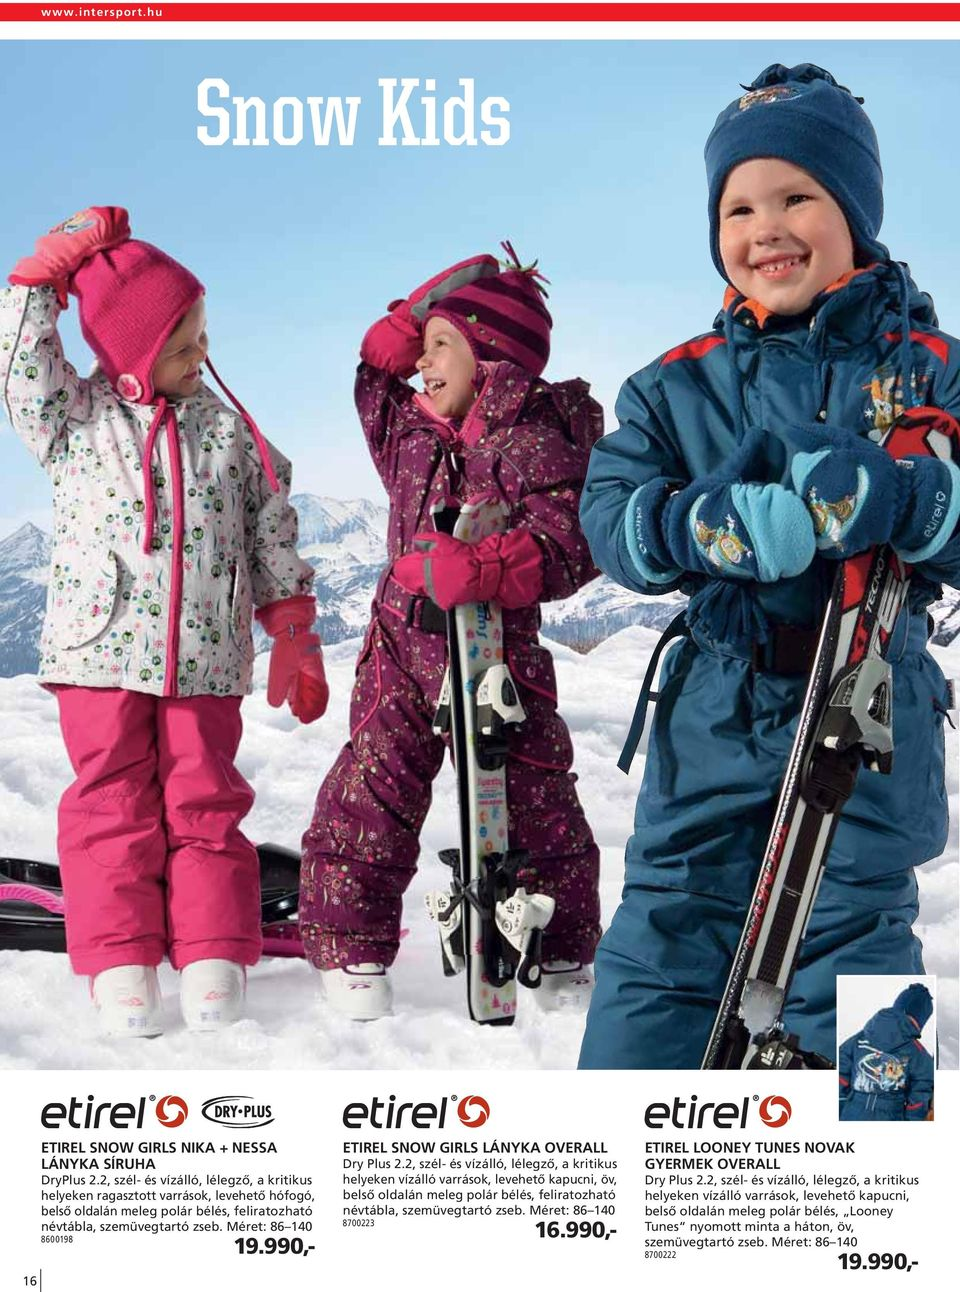 990,- ETIREL SNOW GIRLS LÁNYKA OVERALL Dry Plus 2.